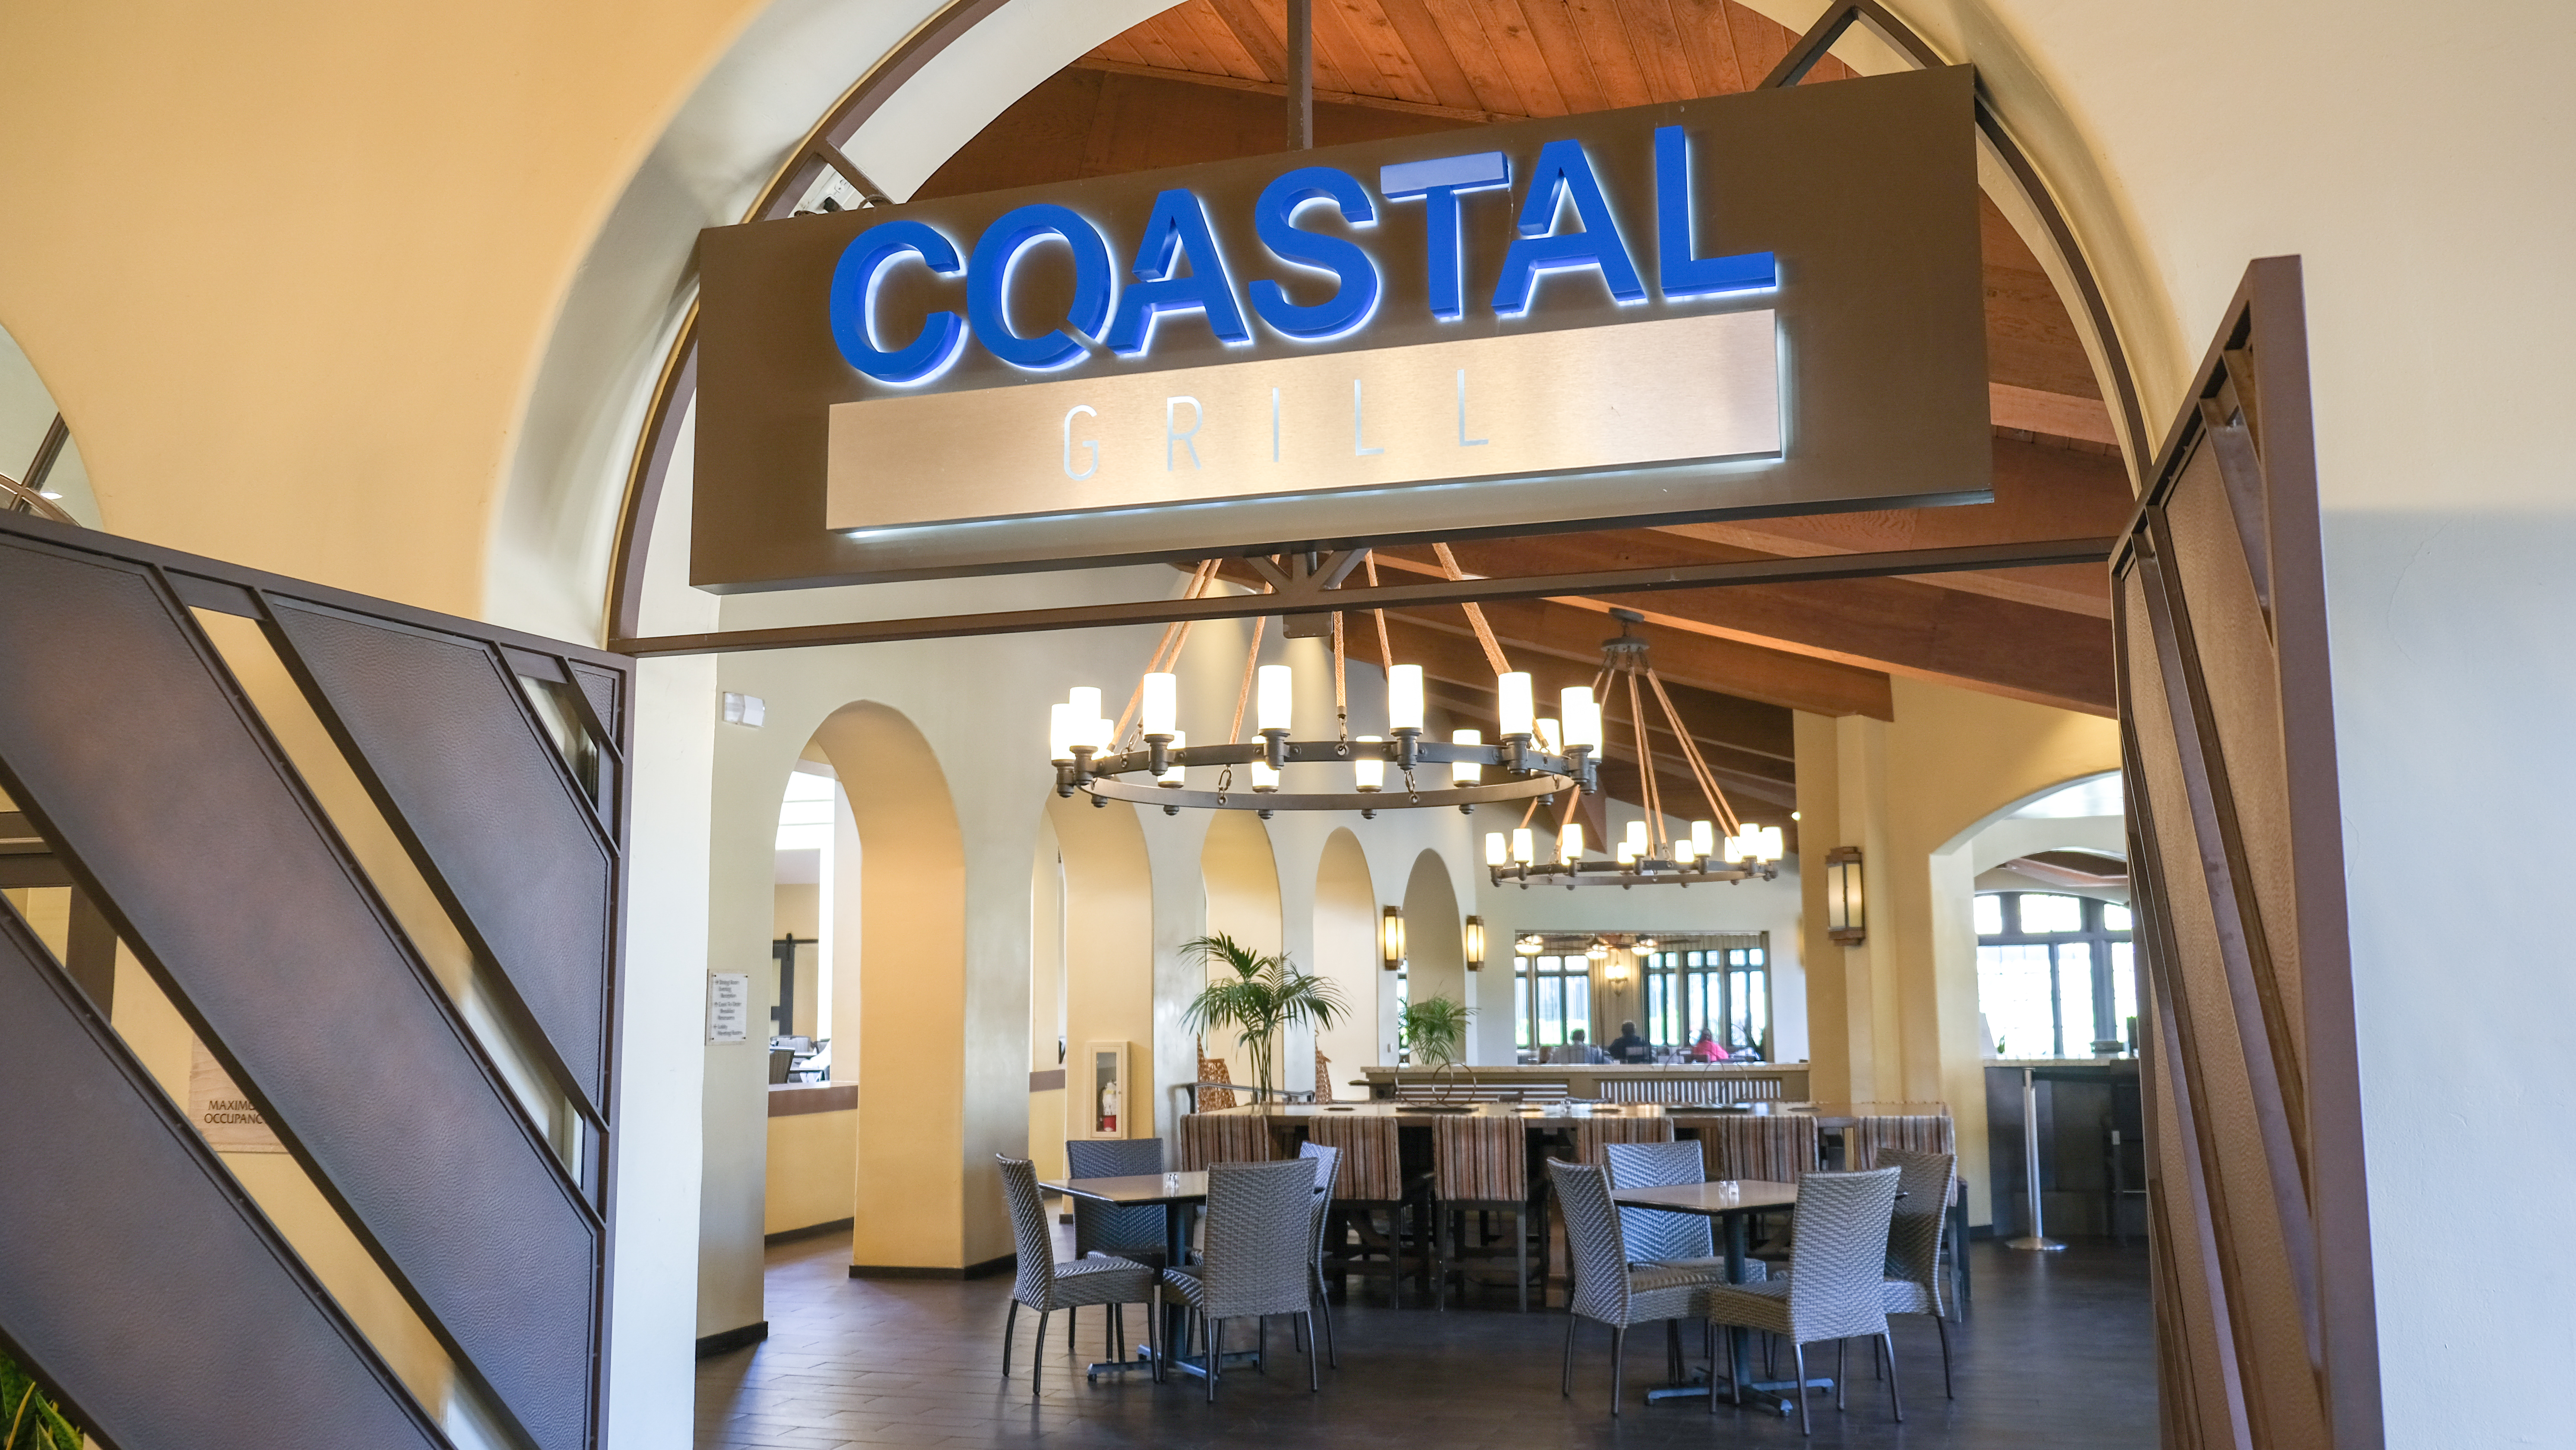 Coastal Grill at Embassy Suites